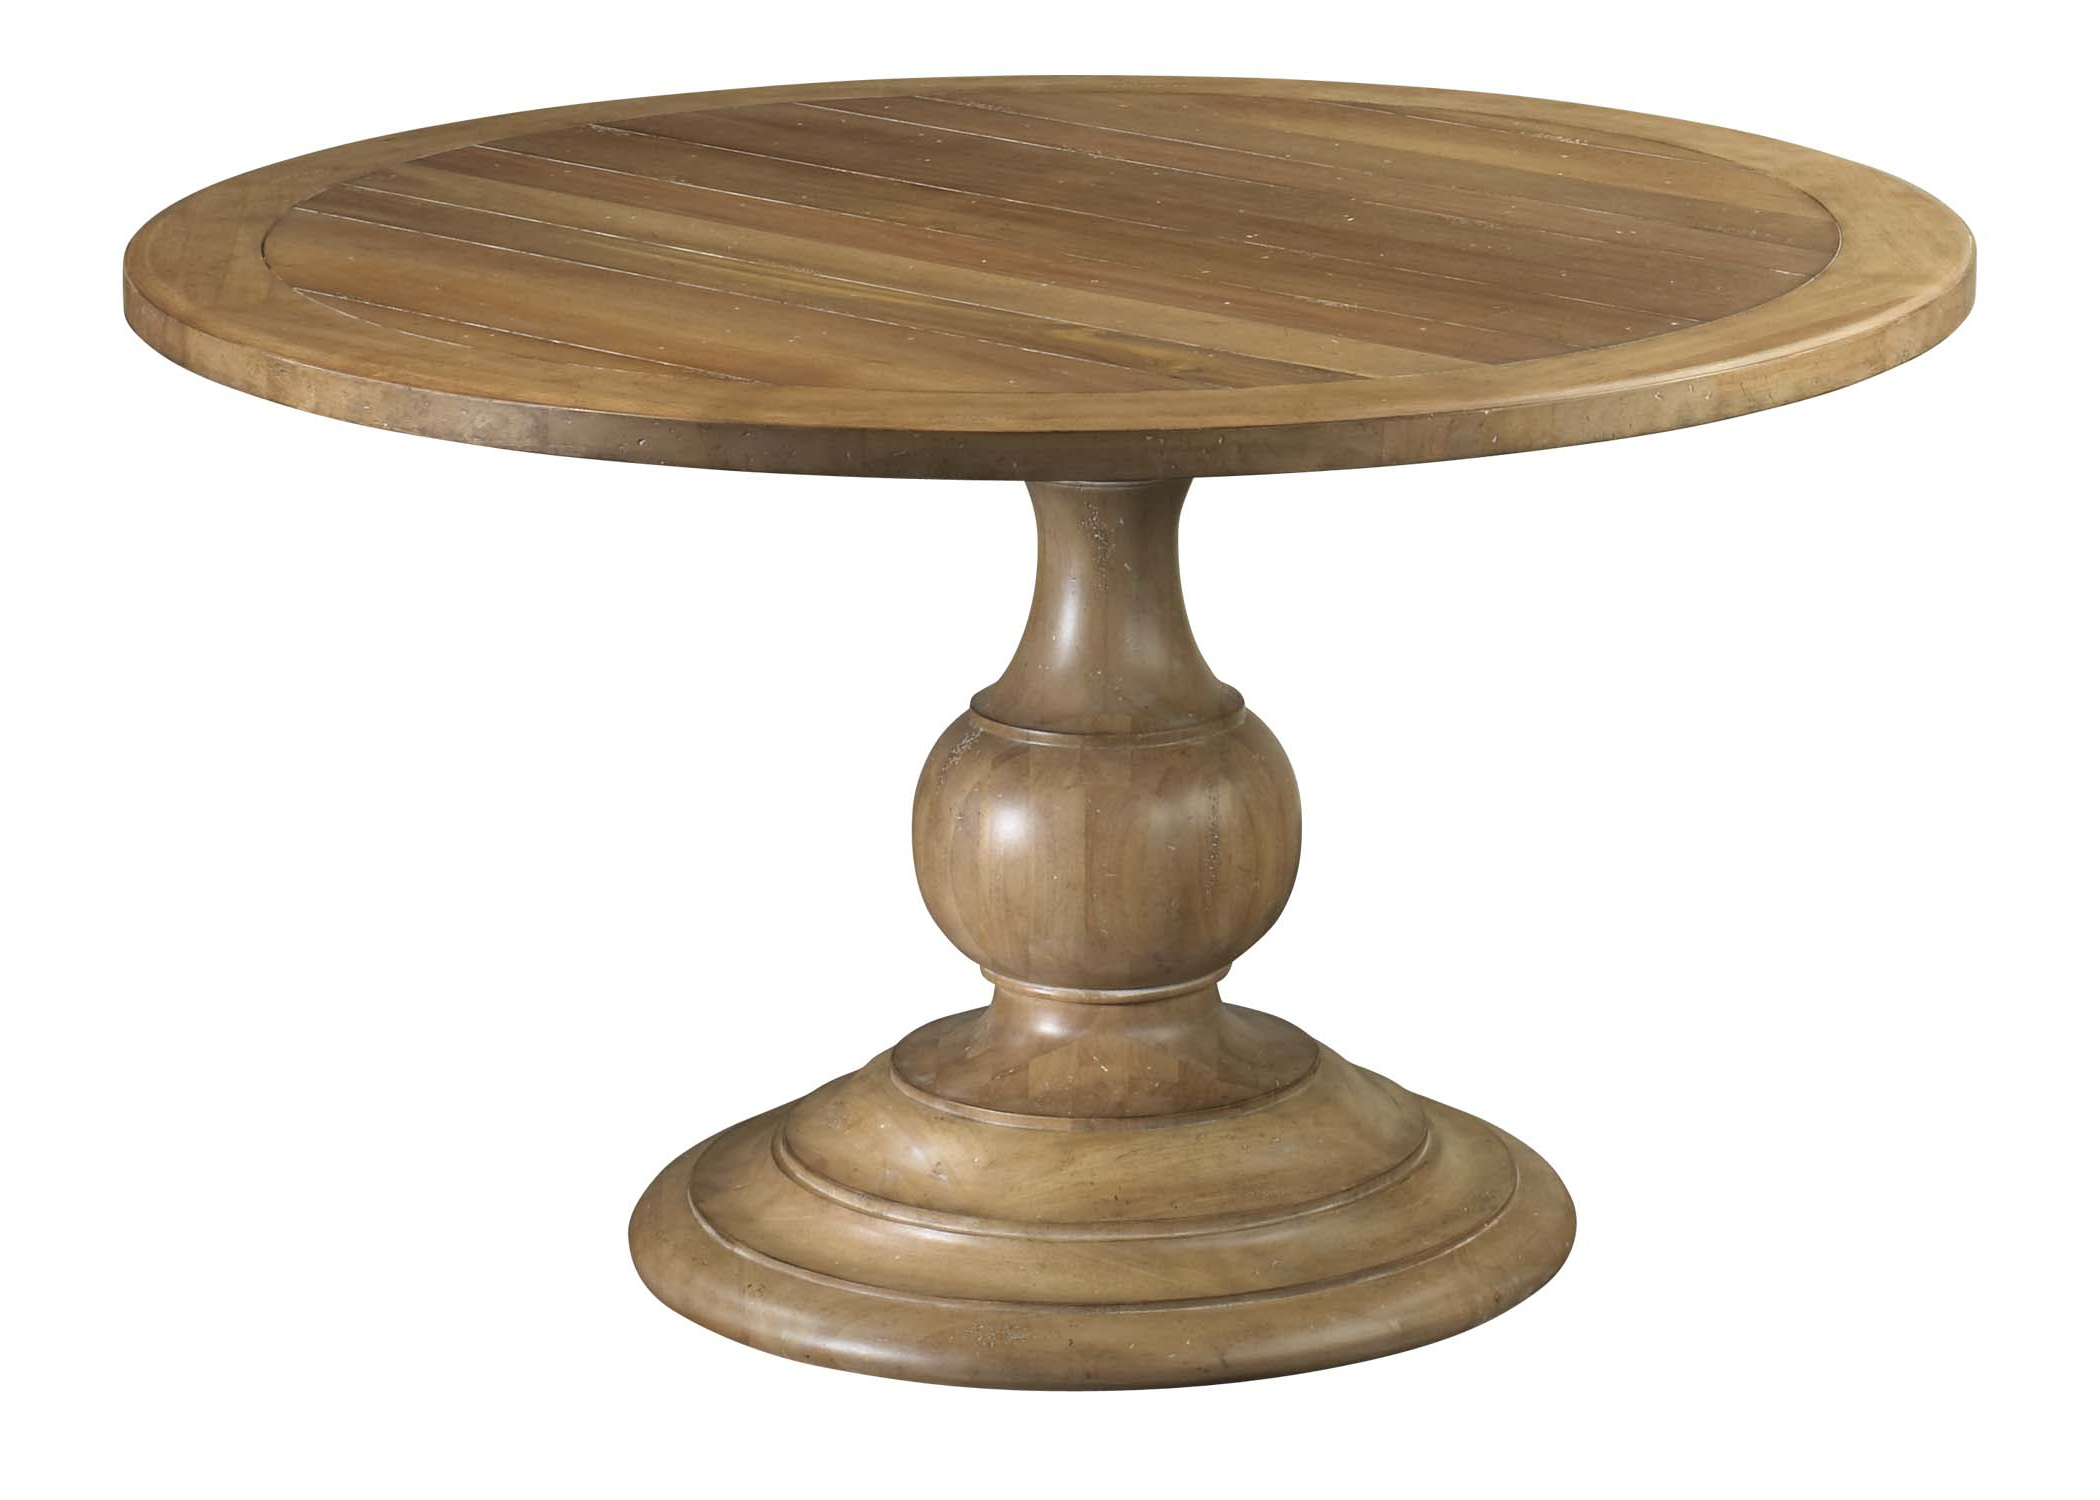 2020 Hewn Oak Lorraine Pedestal Extending Dining Tables Regarding 48 Round Pedestal Dining Table For Small Dining Room Spaces (View 9 of 25)